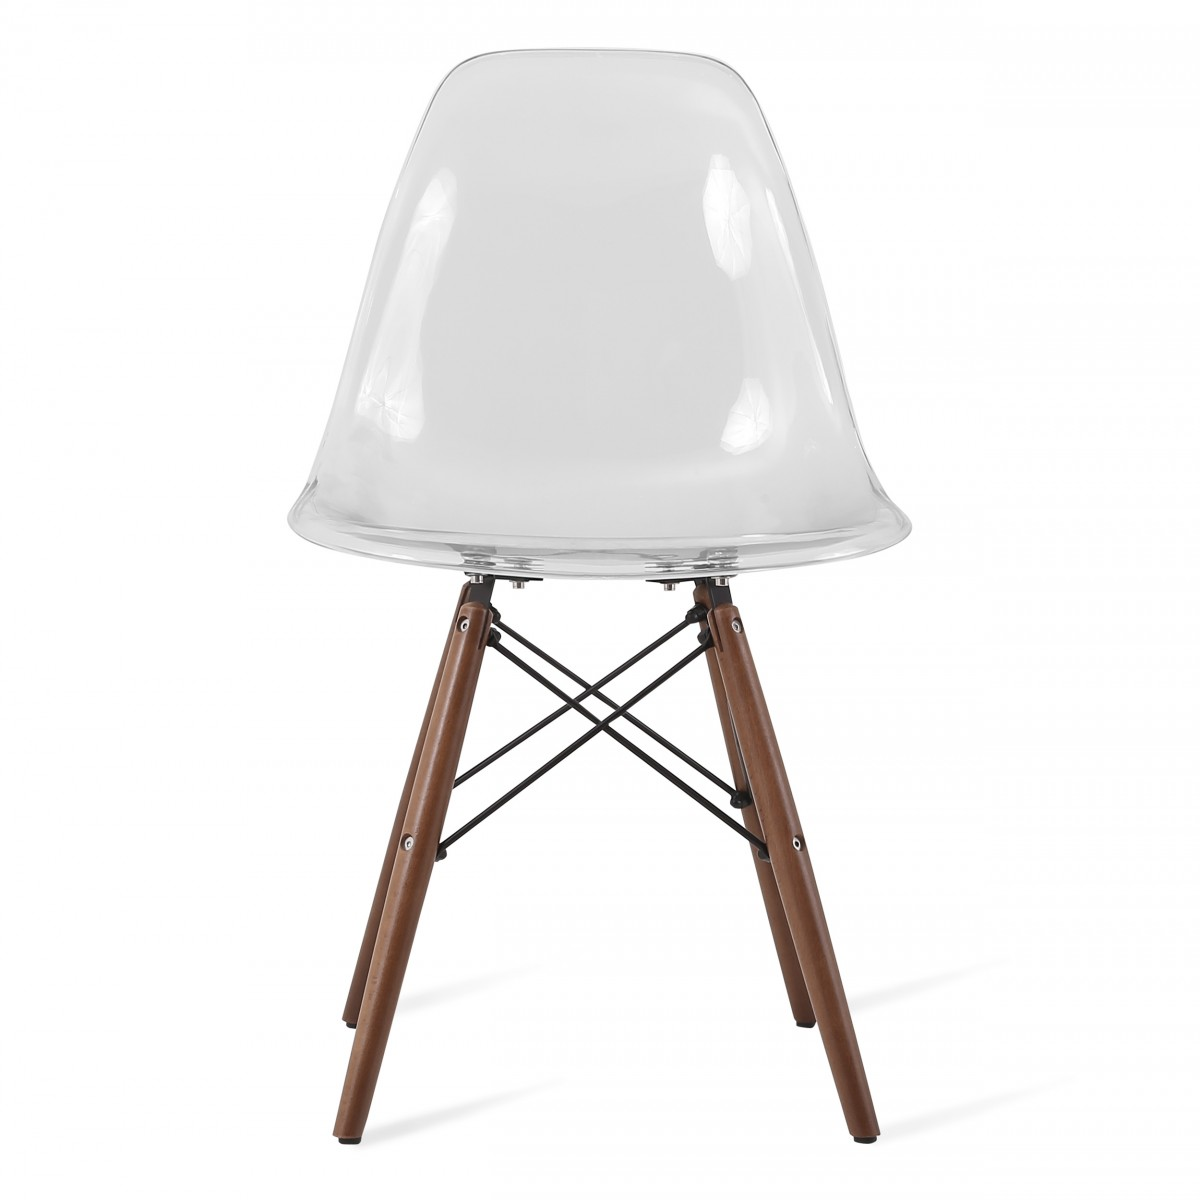 Eames Style DSW Clear Acrylic Plastic Dining Shell Chair  : dsw dining chair clear walnutp2 from www.emoderndecor.com size 1200 x 1200 jpeg 76kB